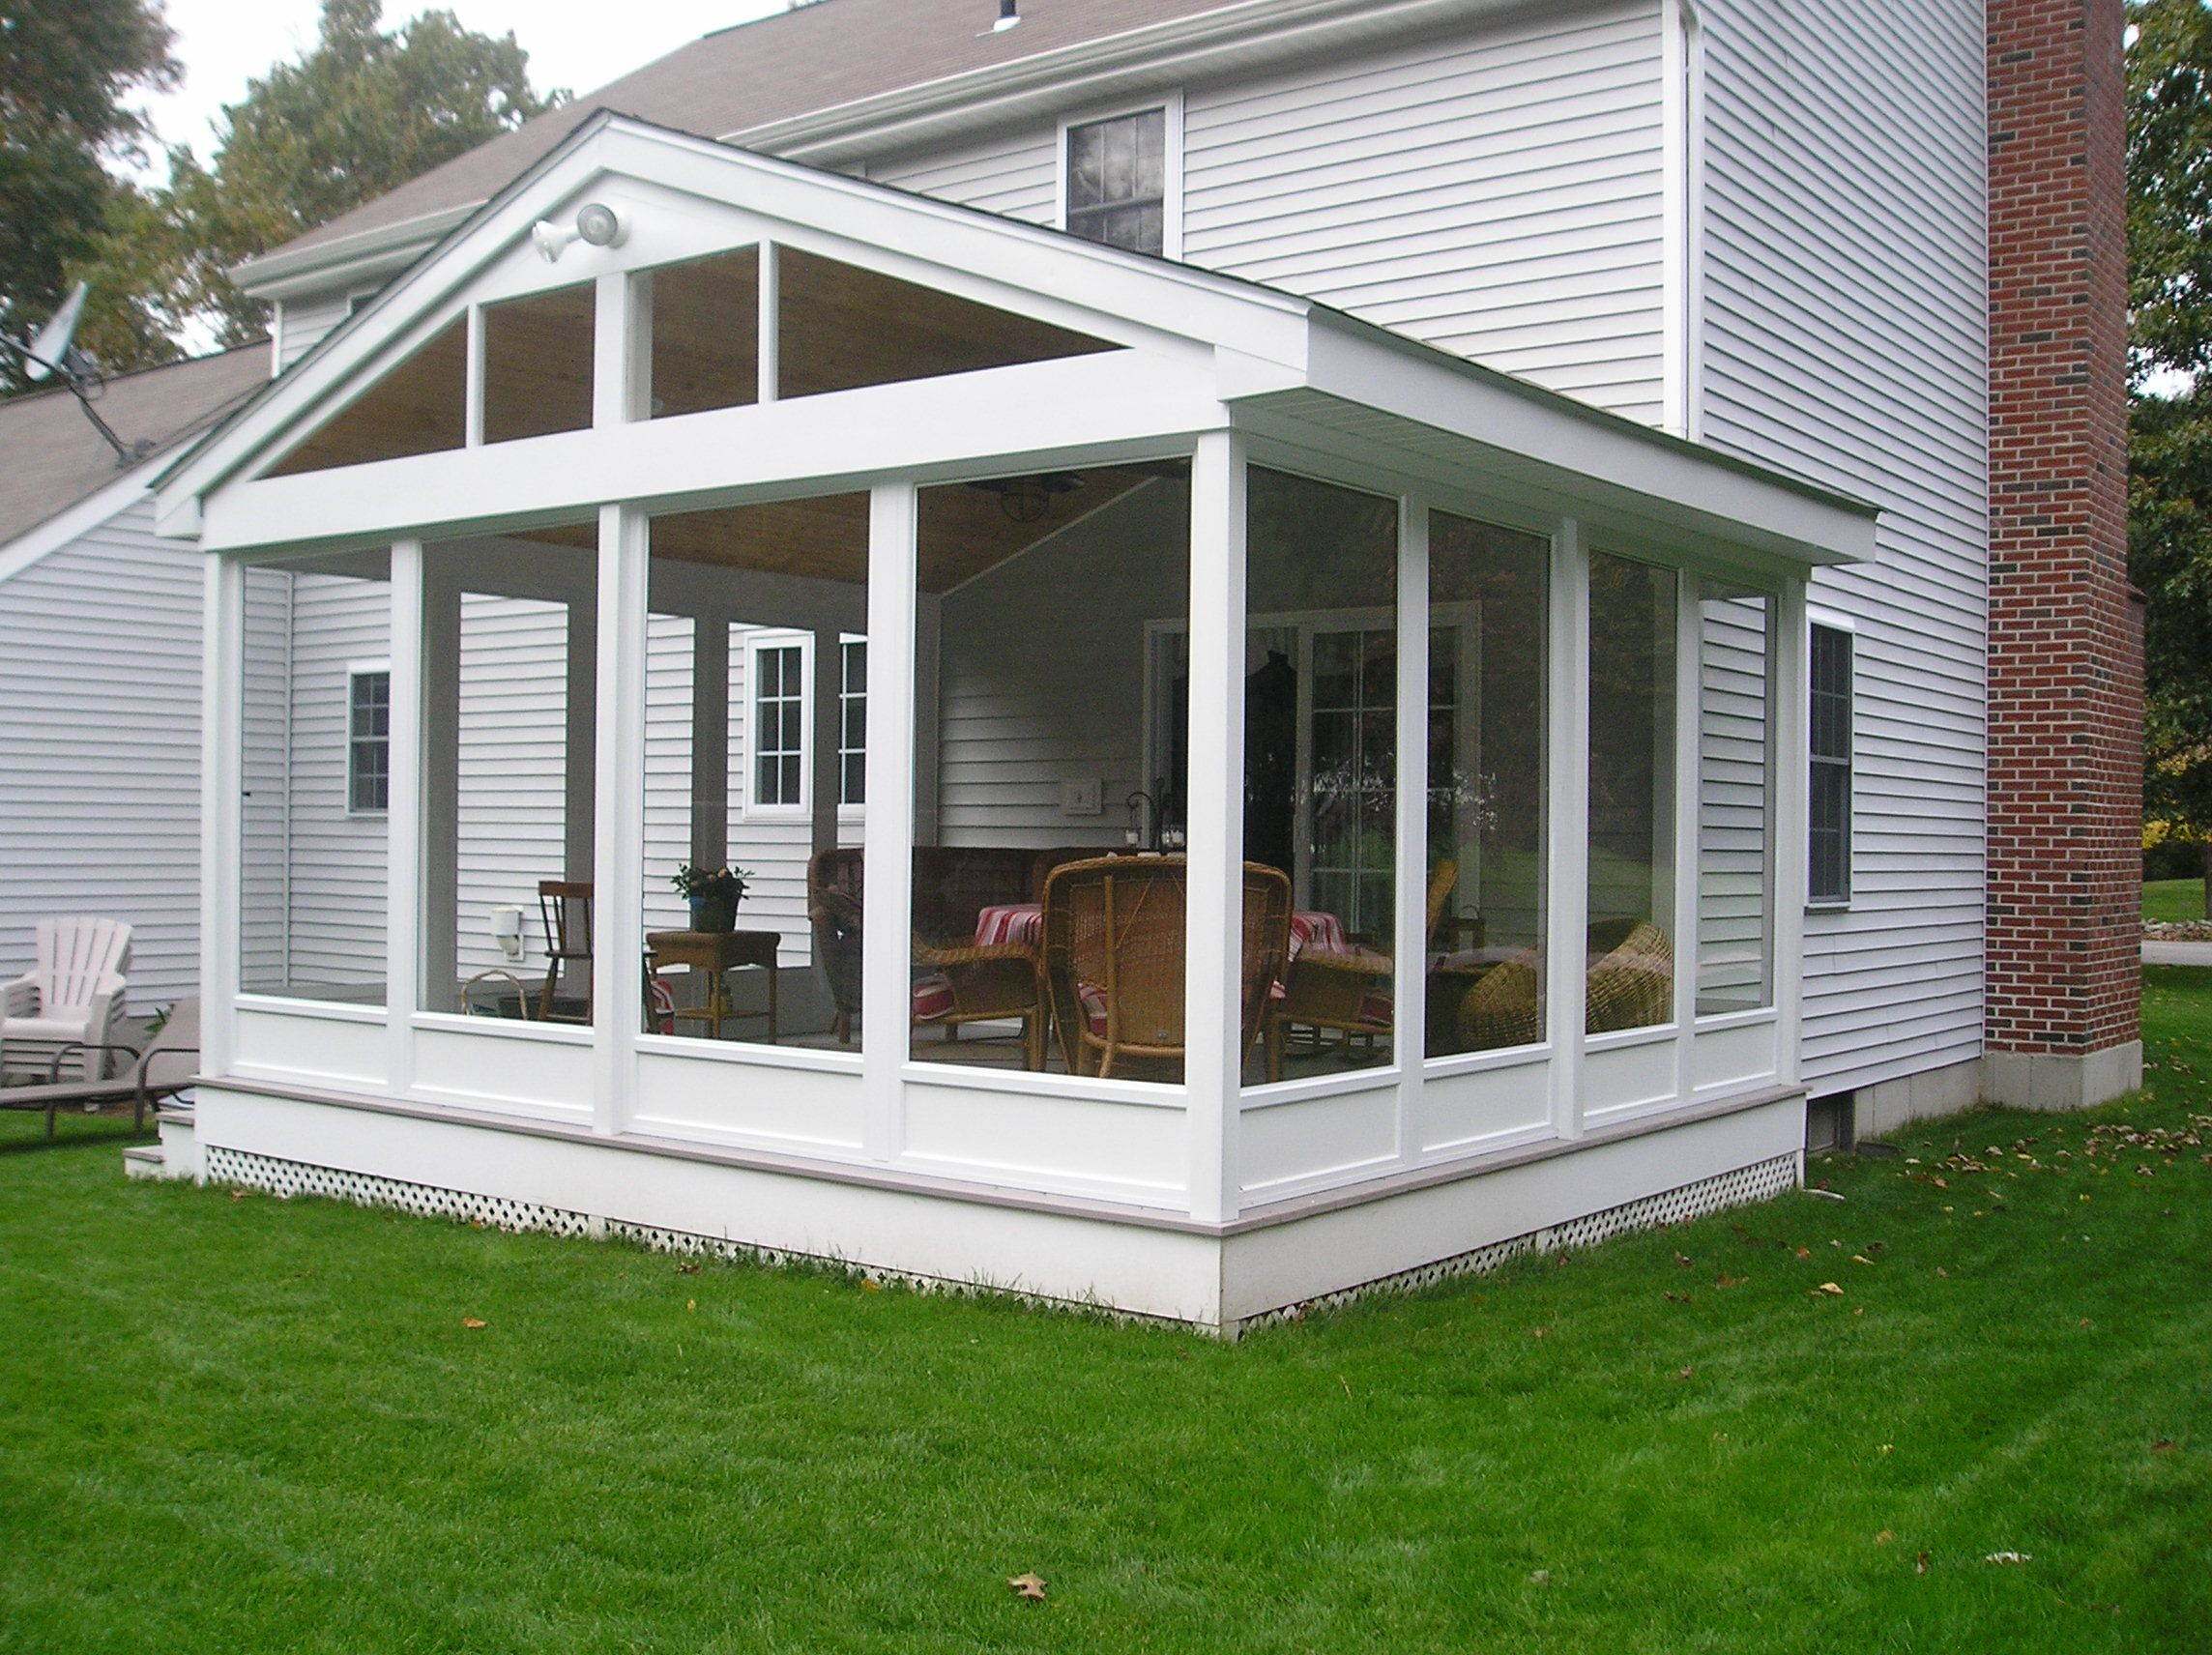 Screen Porch Enclosures Enjoy A Screen Porch Year Round With Harvey Bp Enclosure System Porch Design Screen Porch Systems Screened Porch Designs